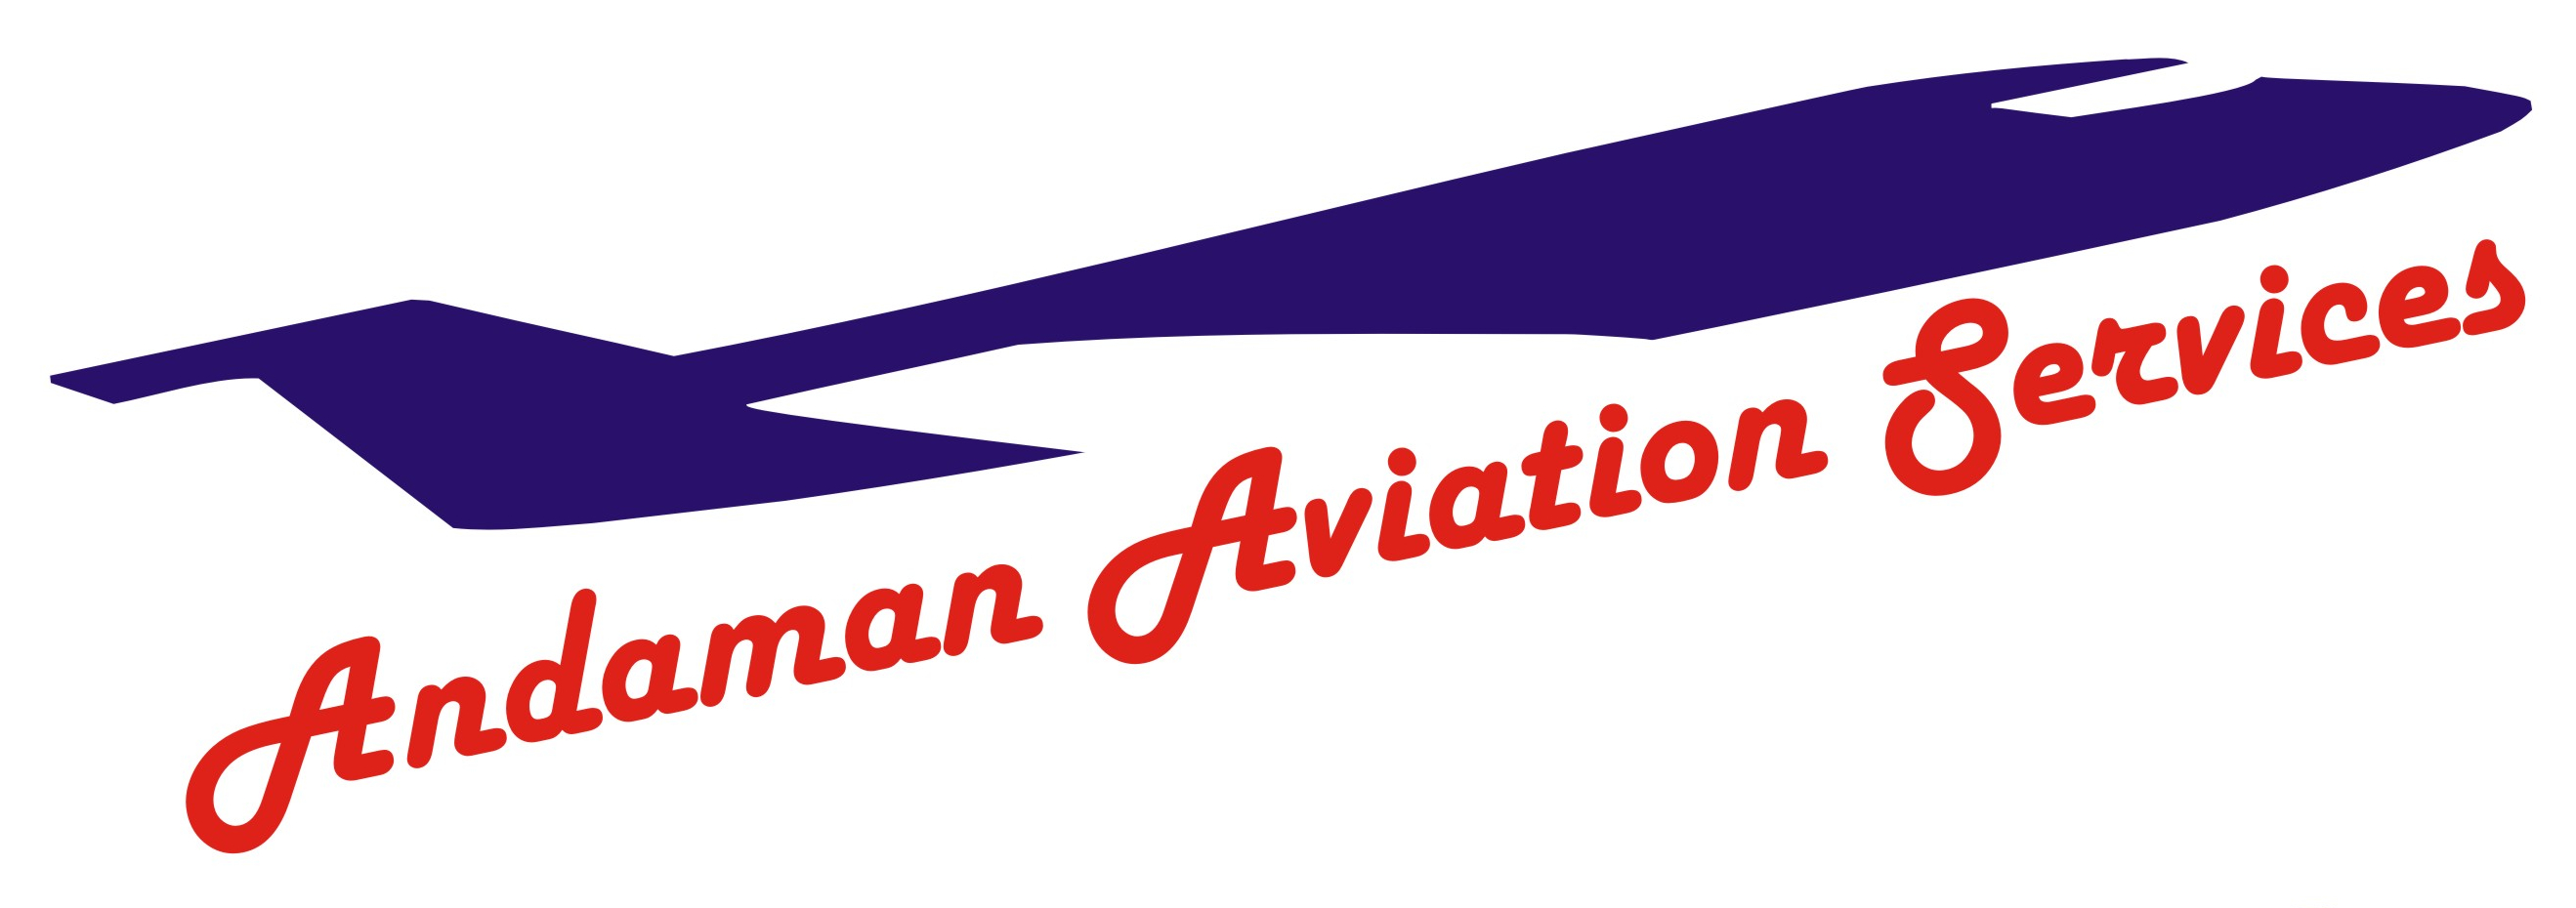 Andaman Aviation Services logo